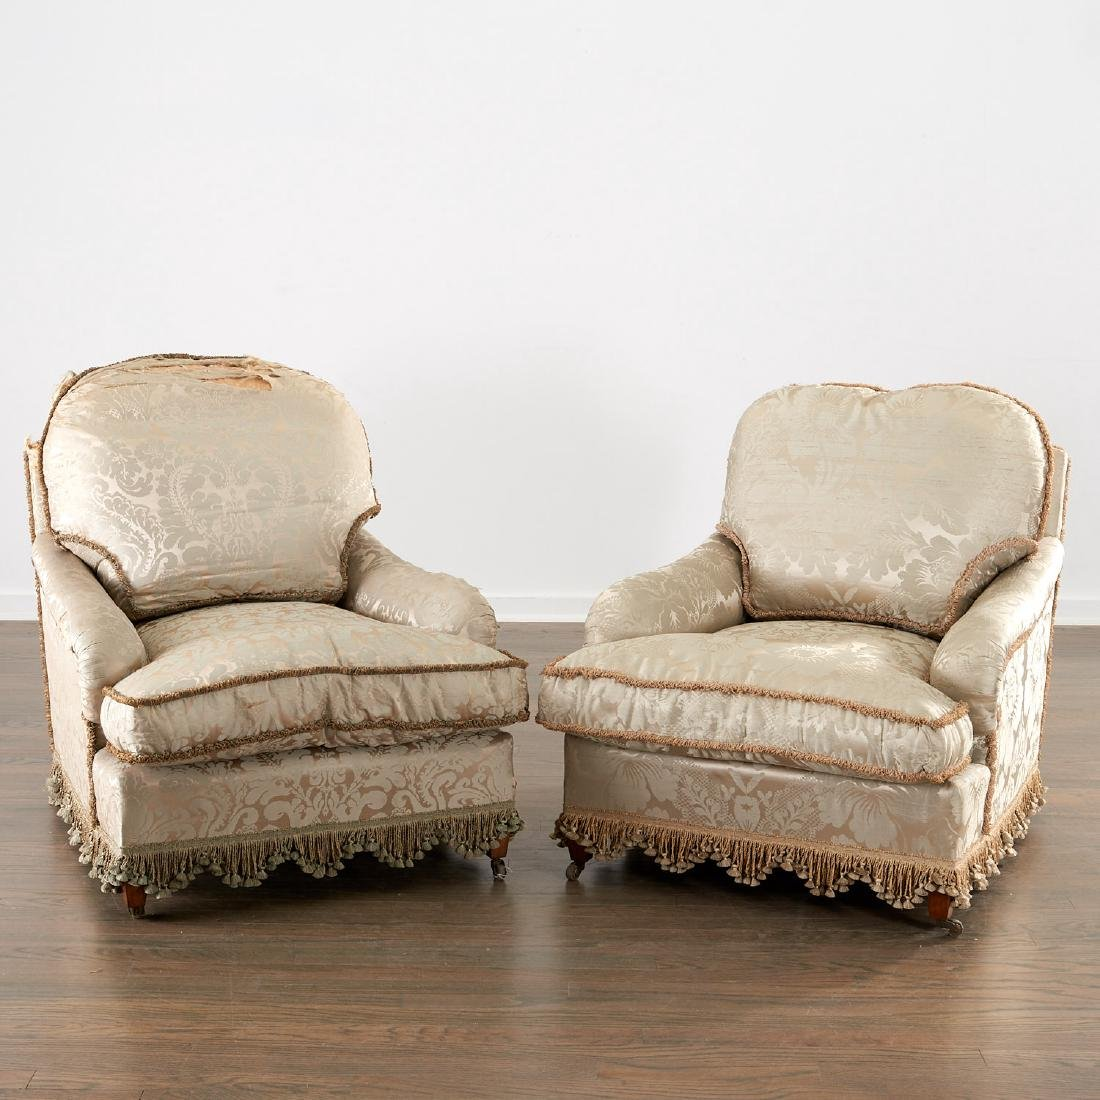 Pair silk upholstered lounge chairs